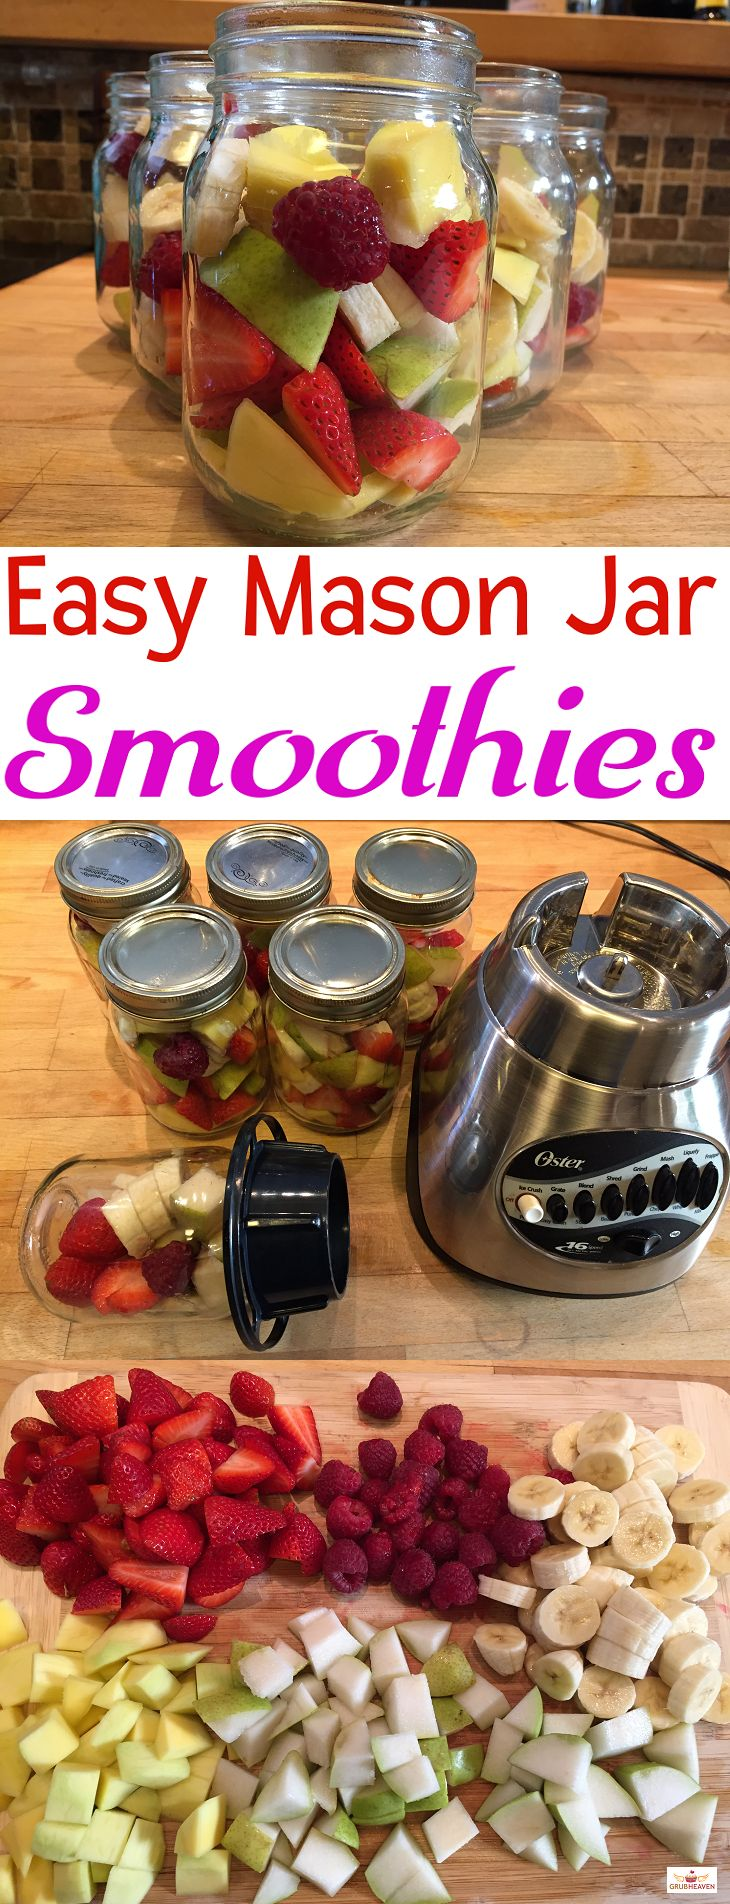 Smoothies you can make directly in your Mason Jar! For the recipe, visit us here: http://www.grubheaven.com/recipe/easy-mason-jar-smoothies/